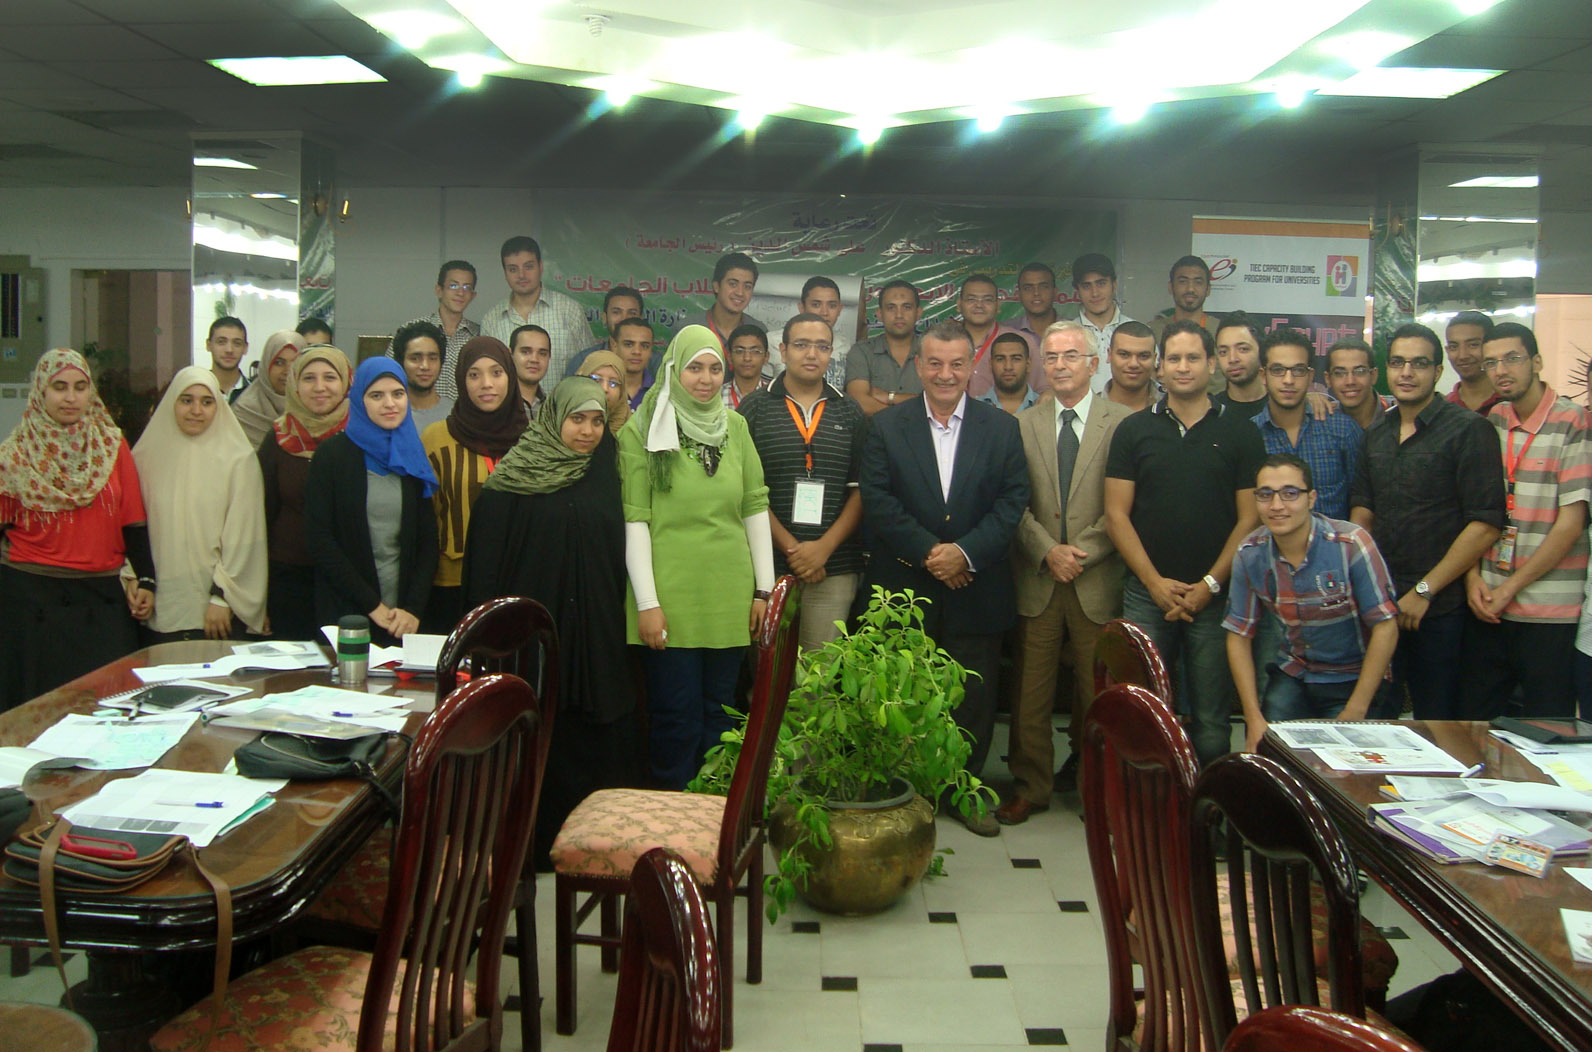 Benha University Students start the Innovation and Entrepreneurship Training